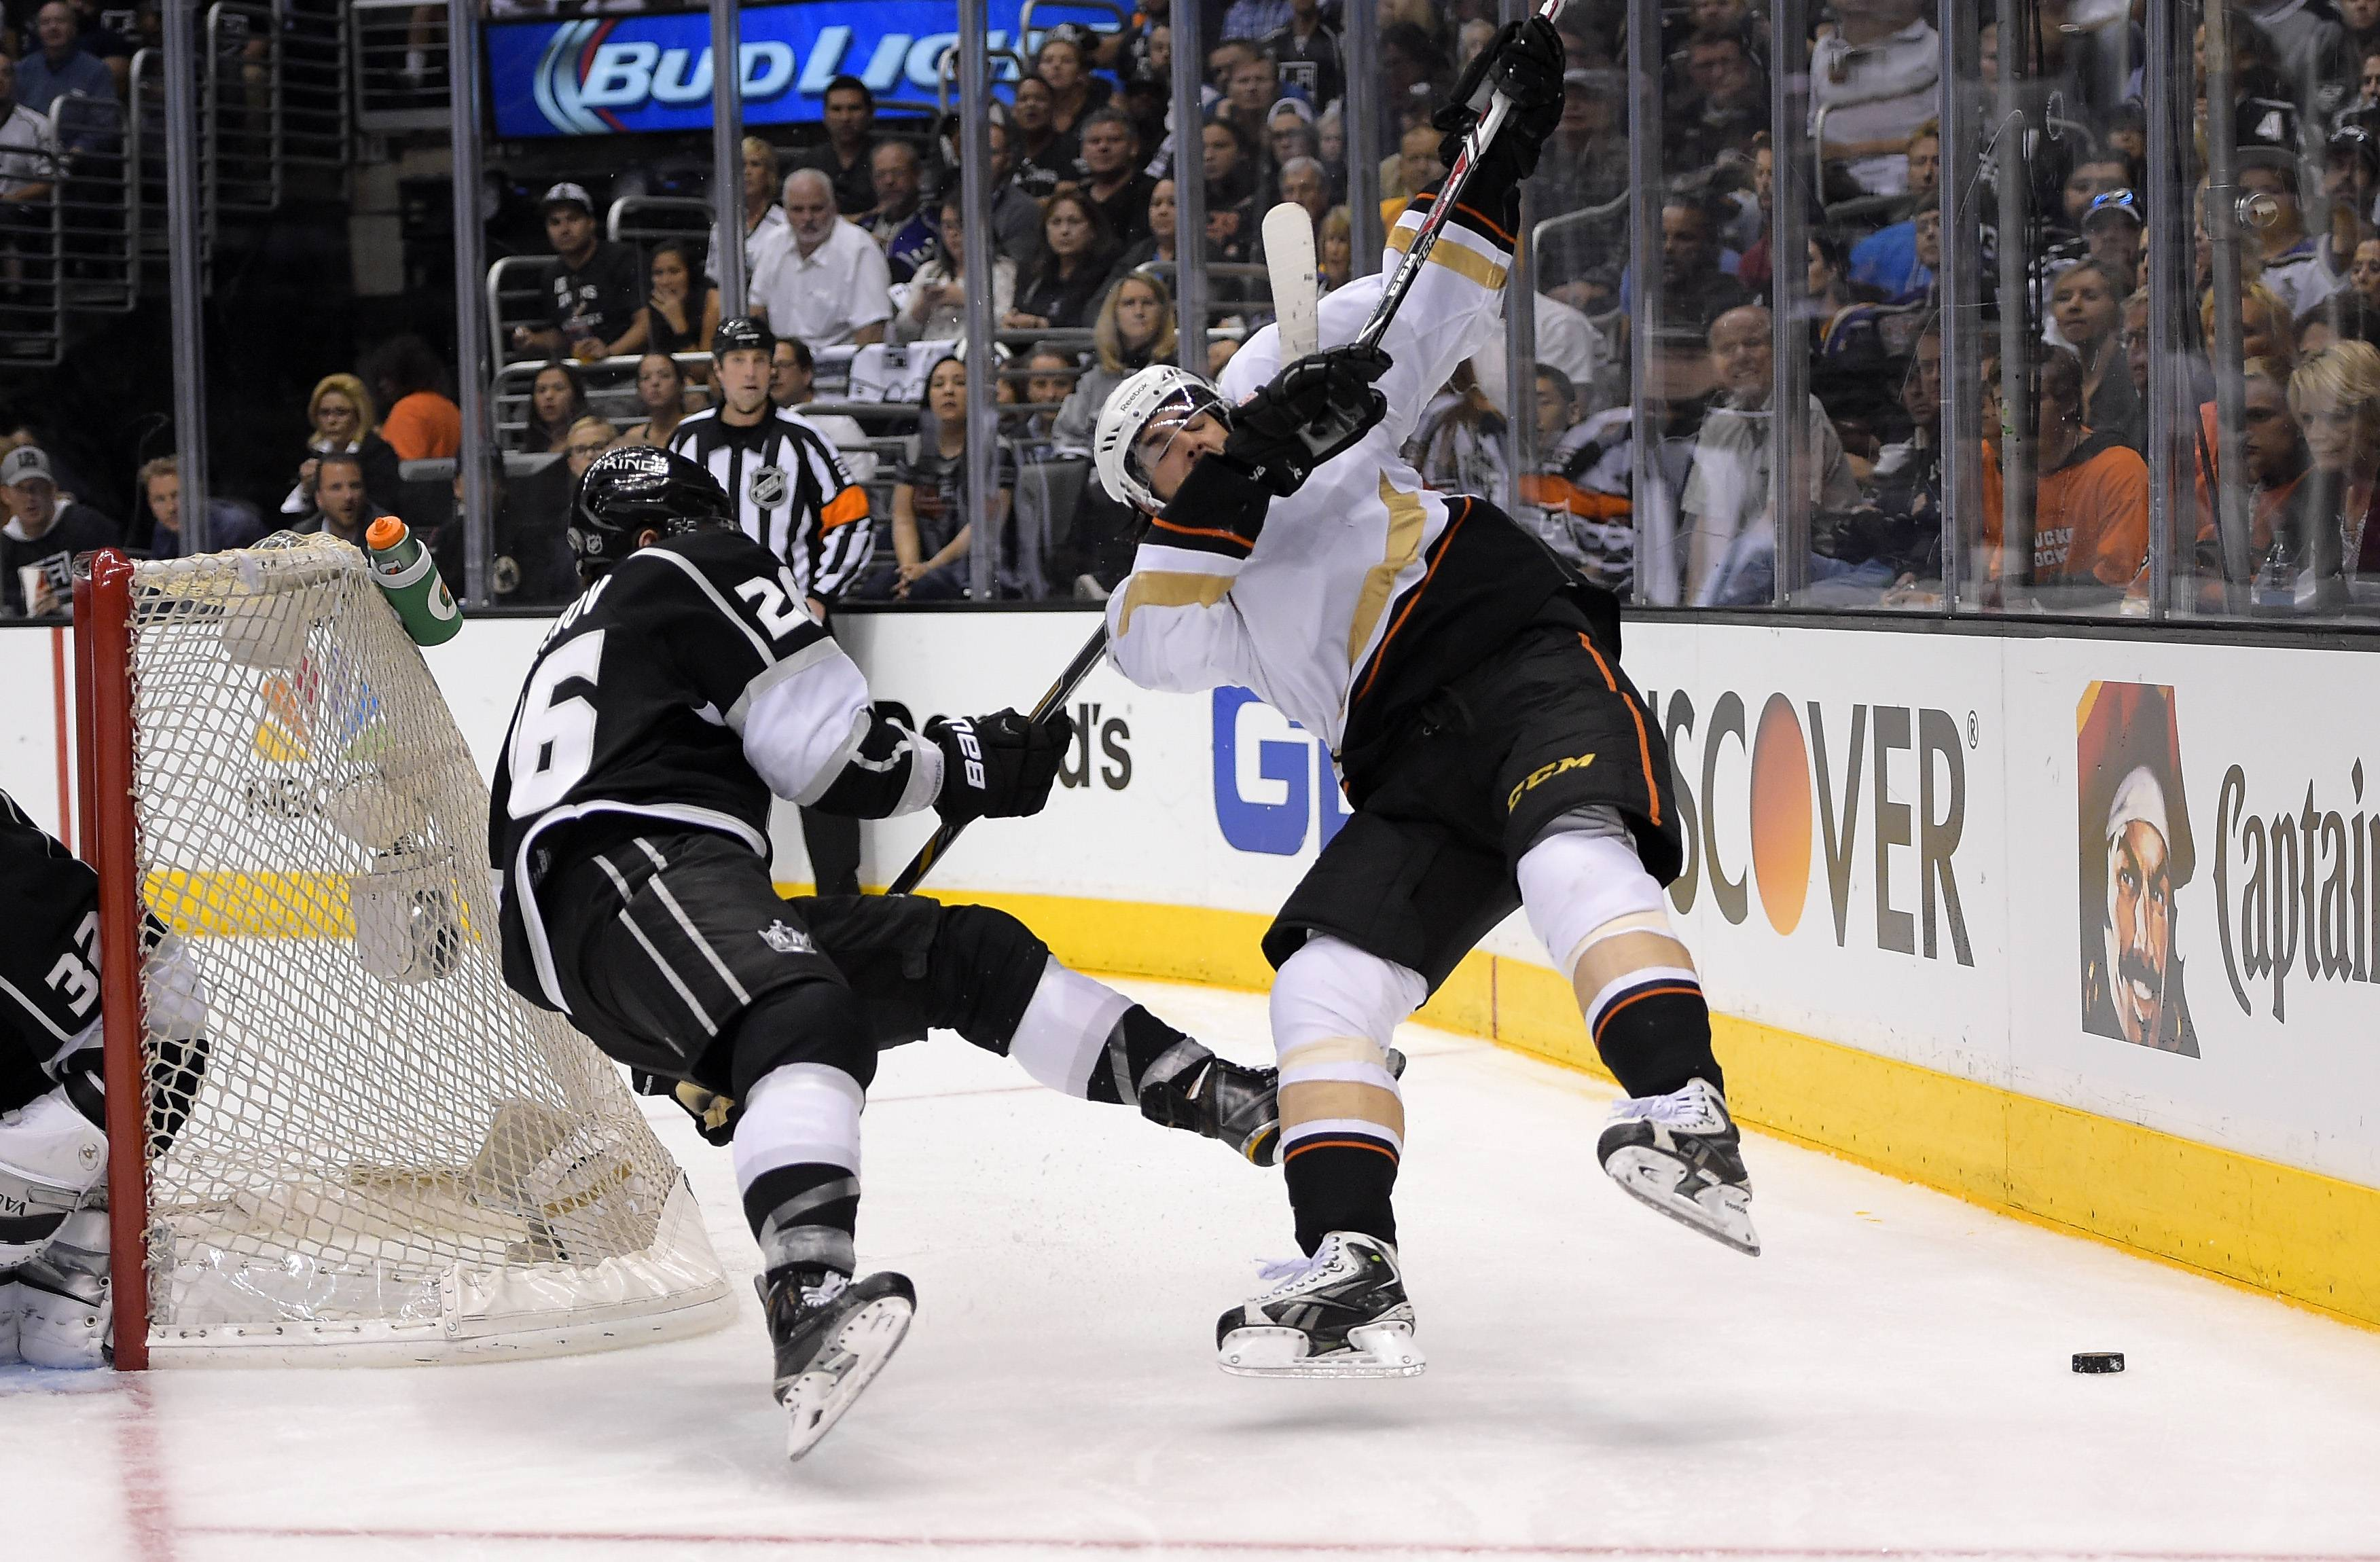 Ducks, LA Kings expect dramatic finish in Game 7 tonight